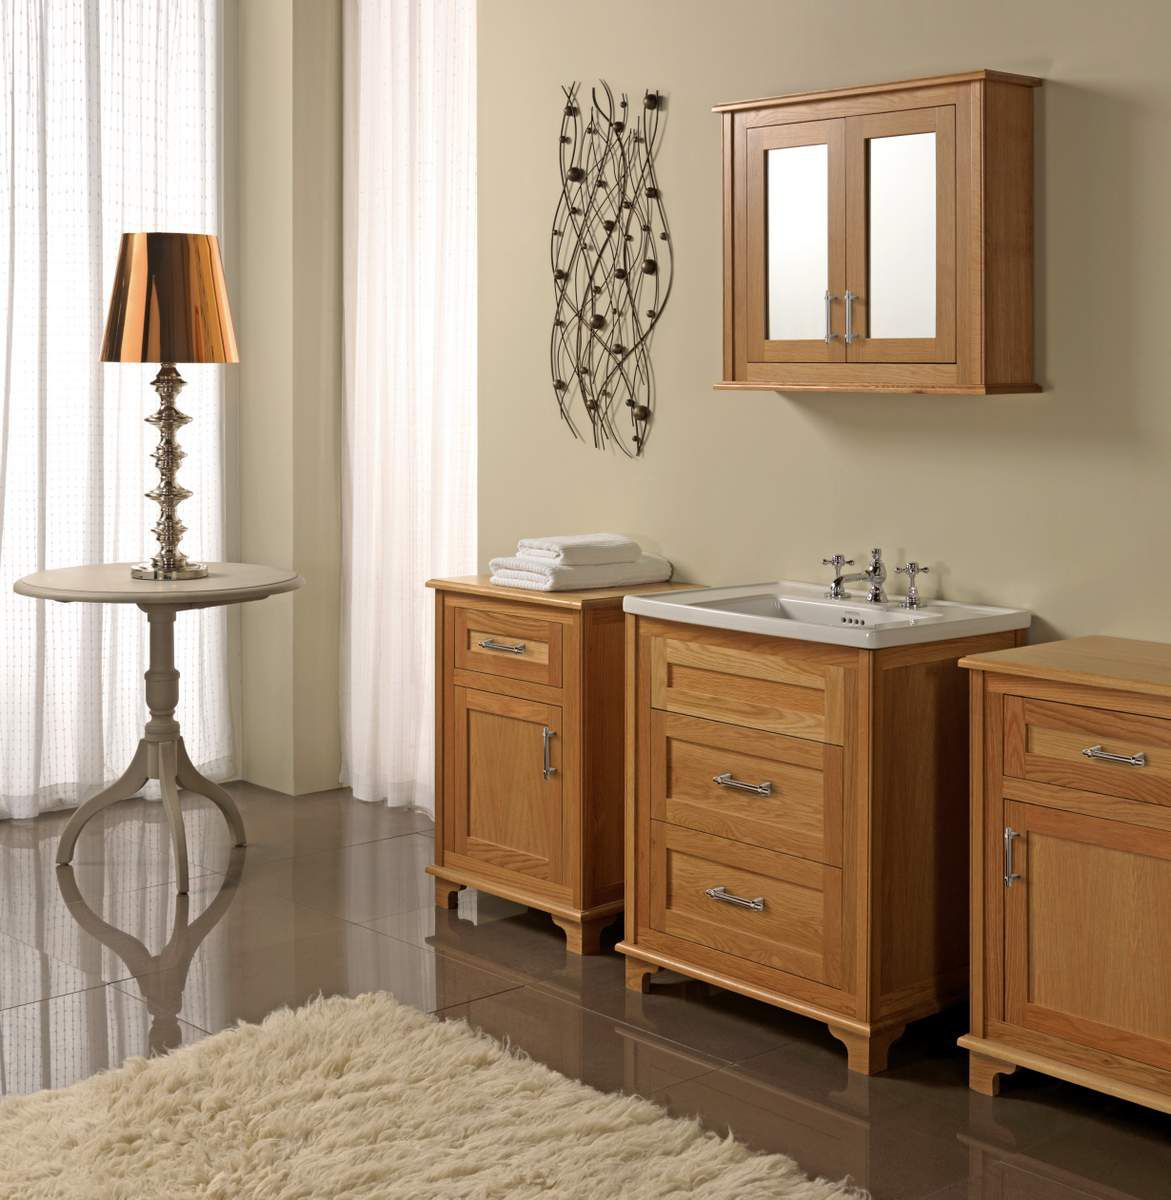 Magnificent Vanity Units Bathroom Cabinets Both Wall Hung Download Free Architecture Designs Embacsunscenecom